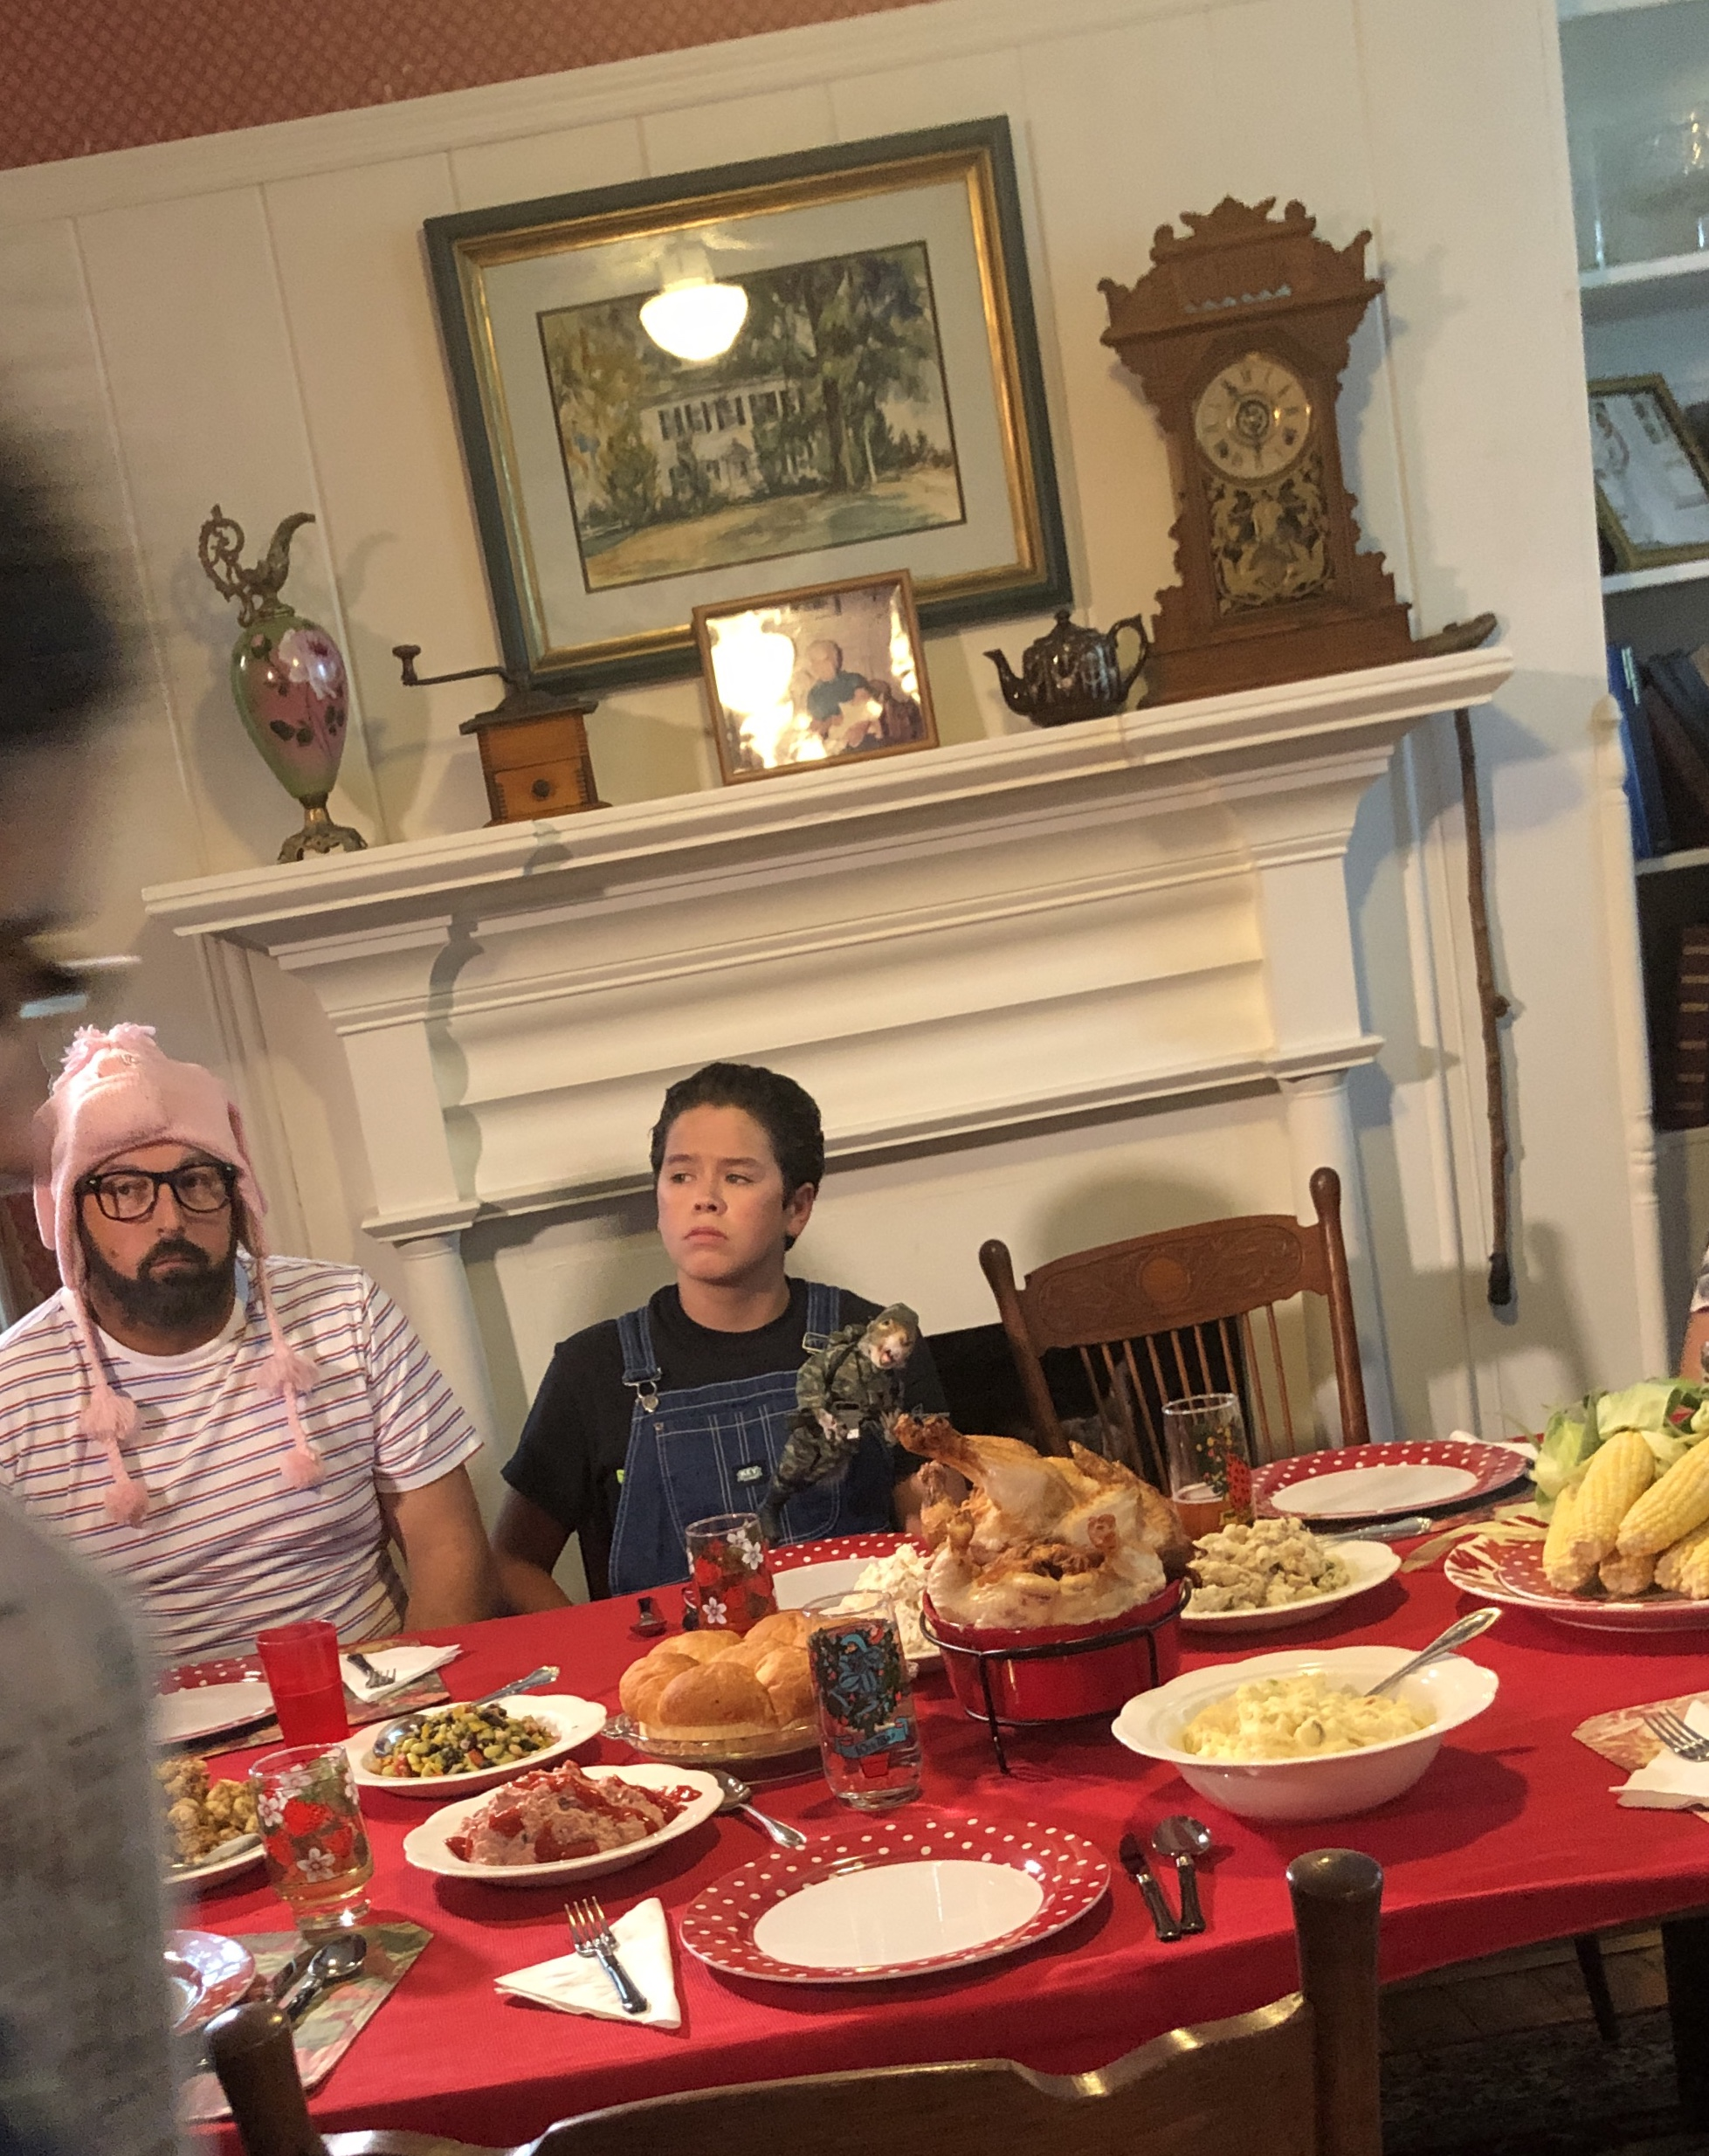 Zaide Avila and David Towner in Our Scripted Life (2020)